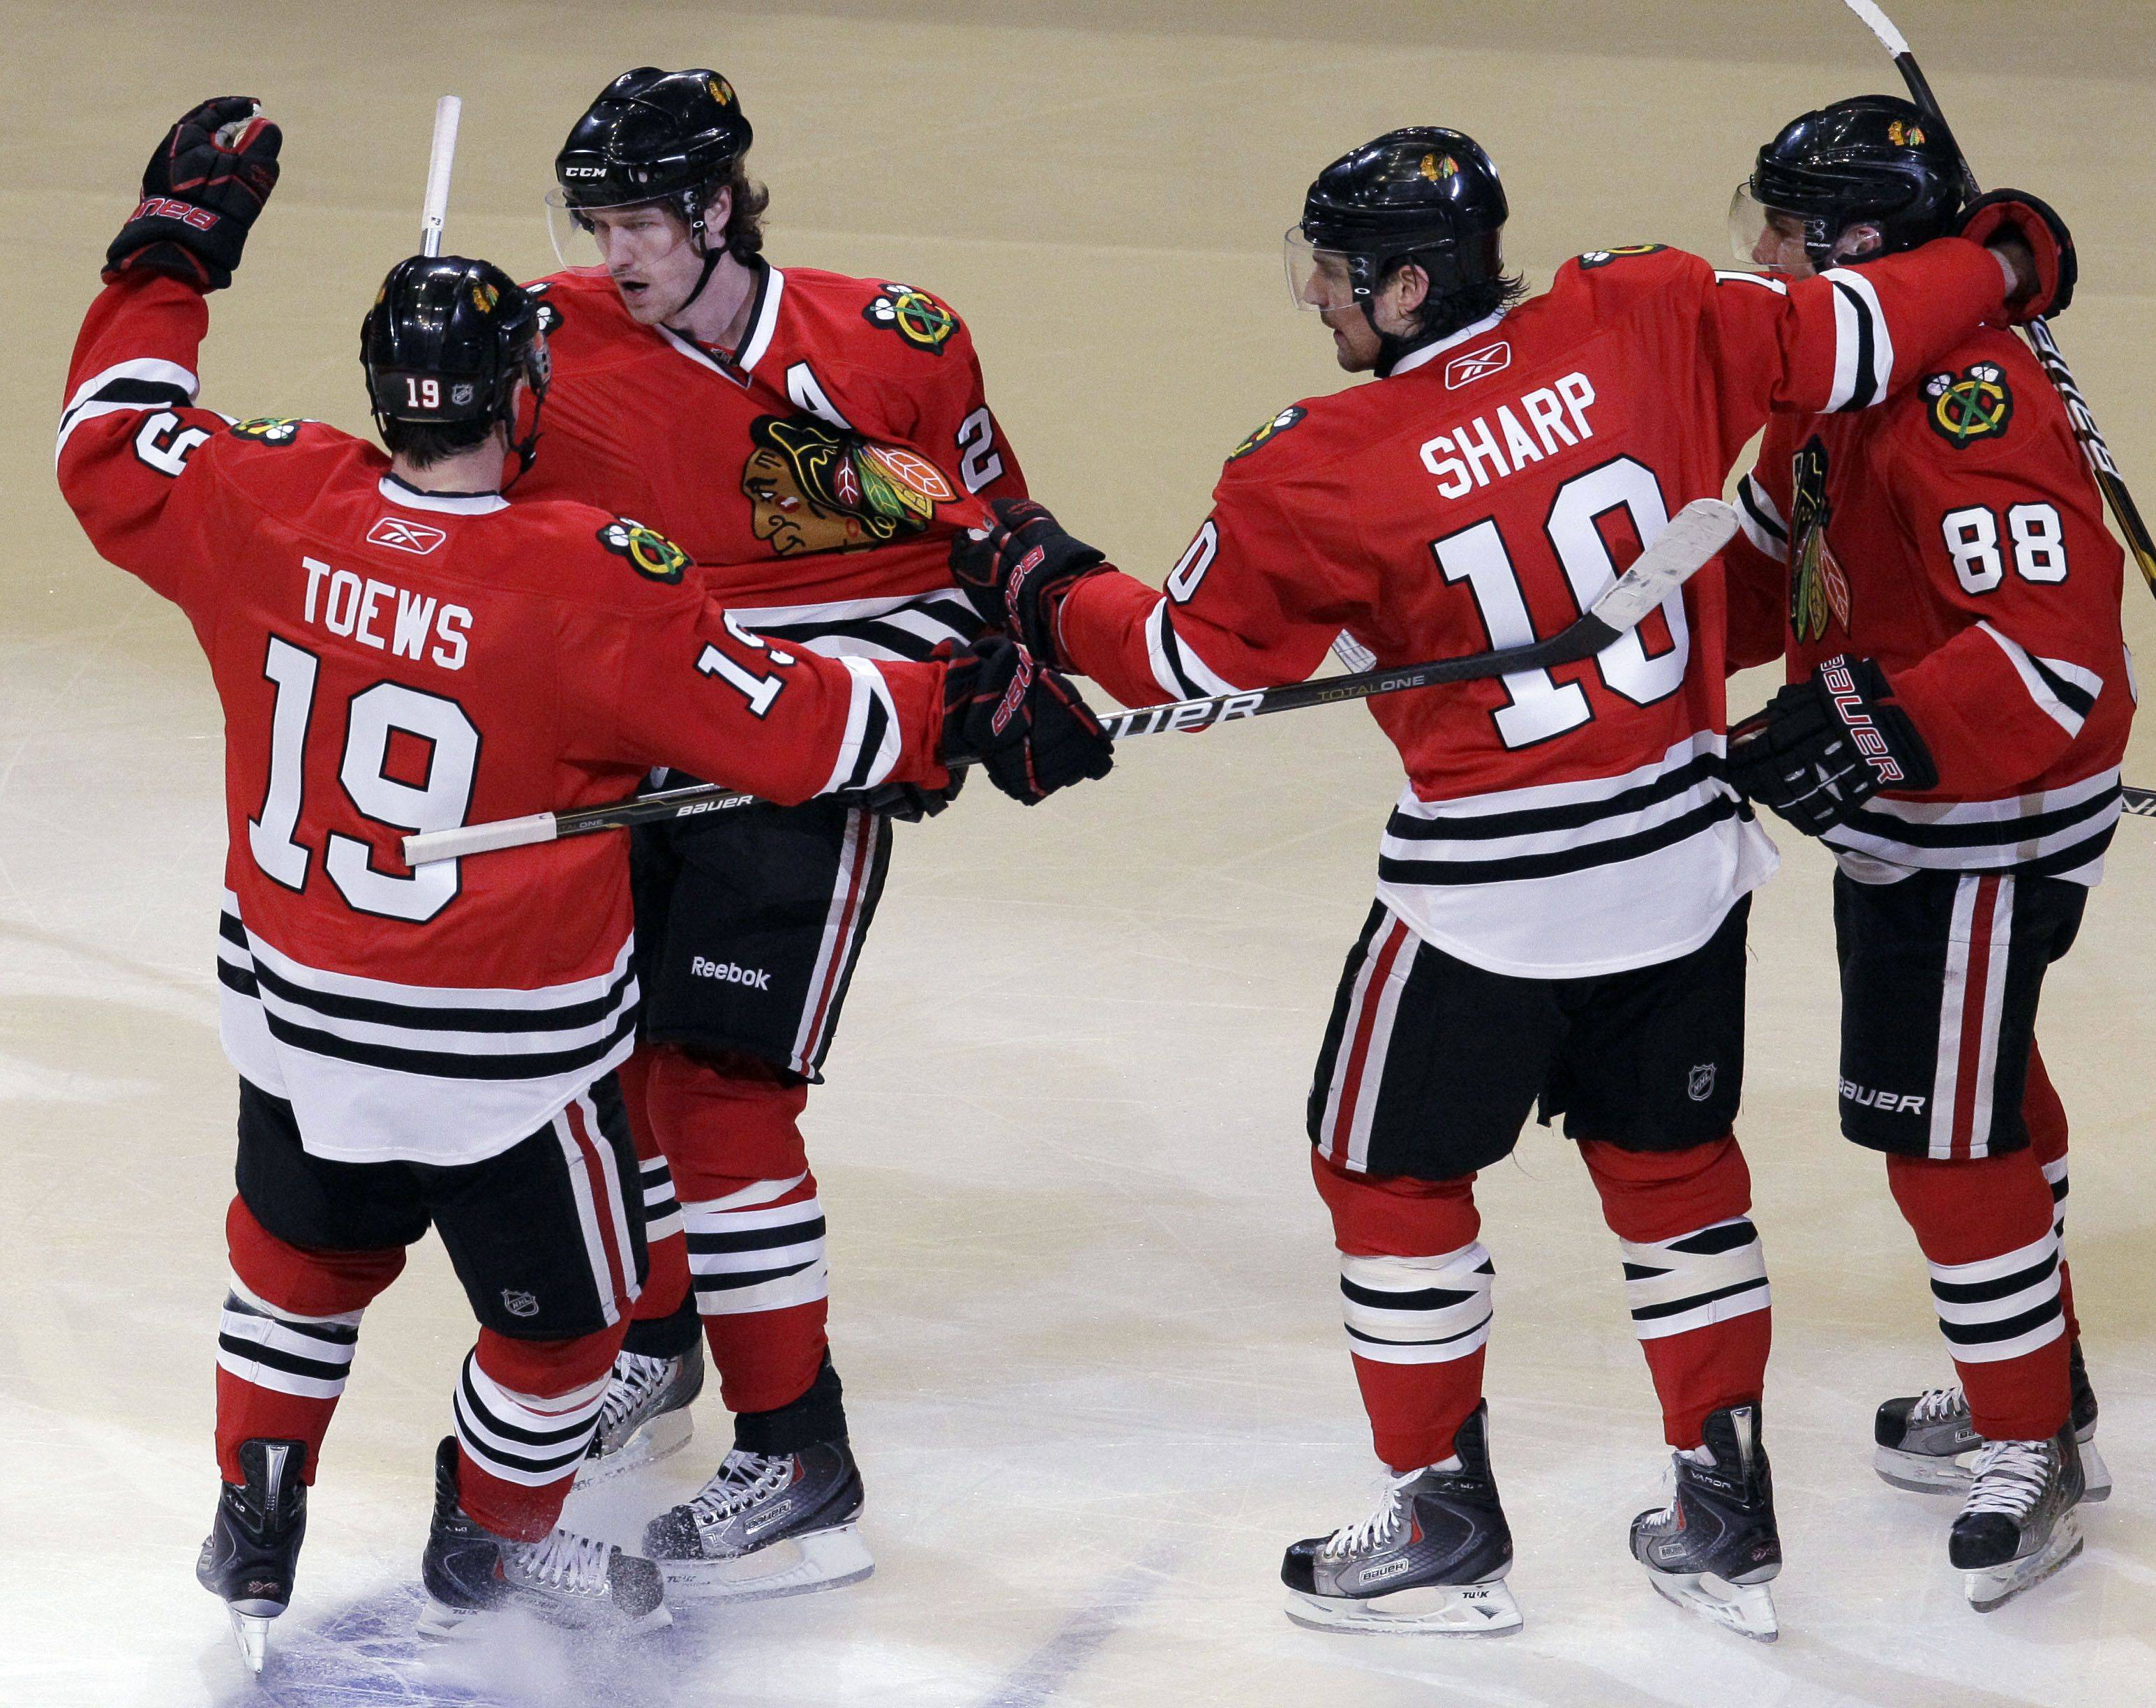 Blackhawks' Duncan Keith, second from left, celebrates with Jonathan Toews, left, Patrick Sharp (10) and Patrick Kane after scoring his goal during the first period of Game 3.